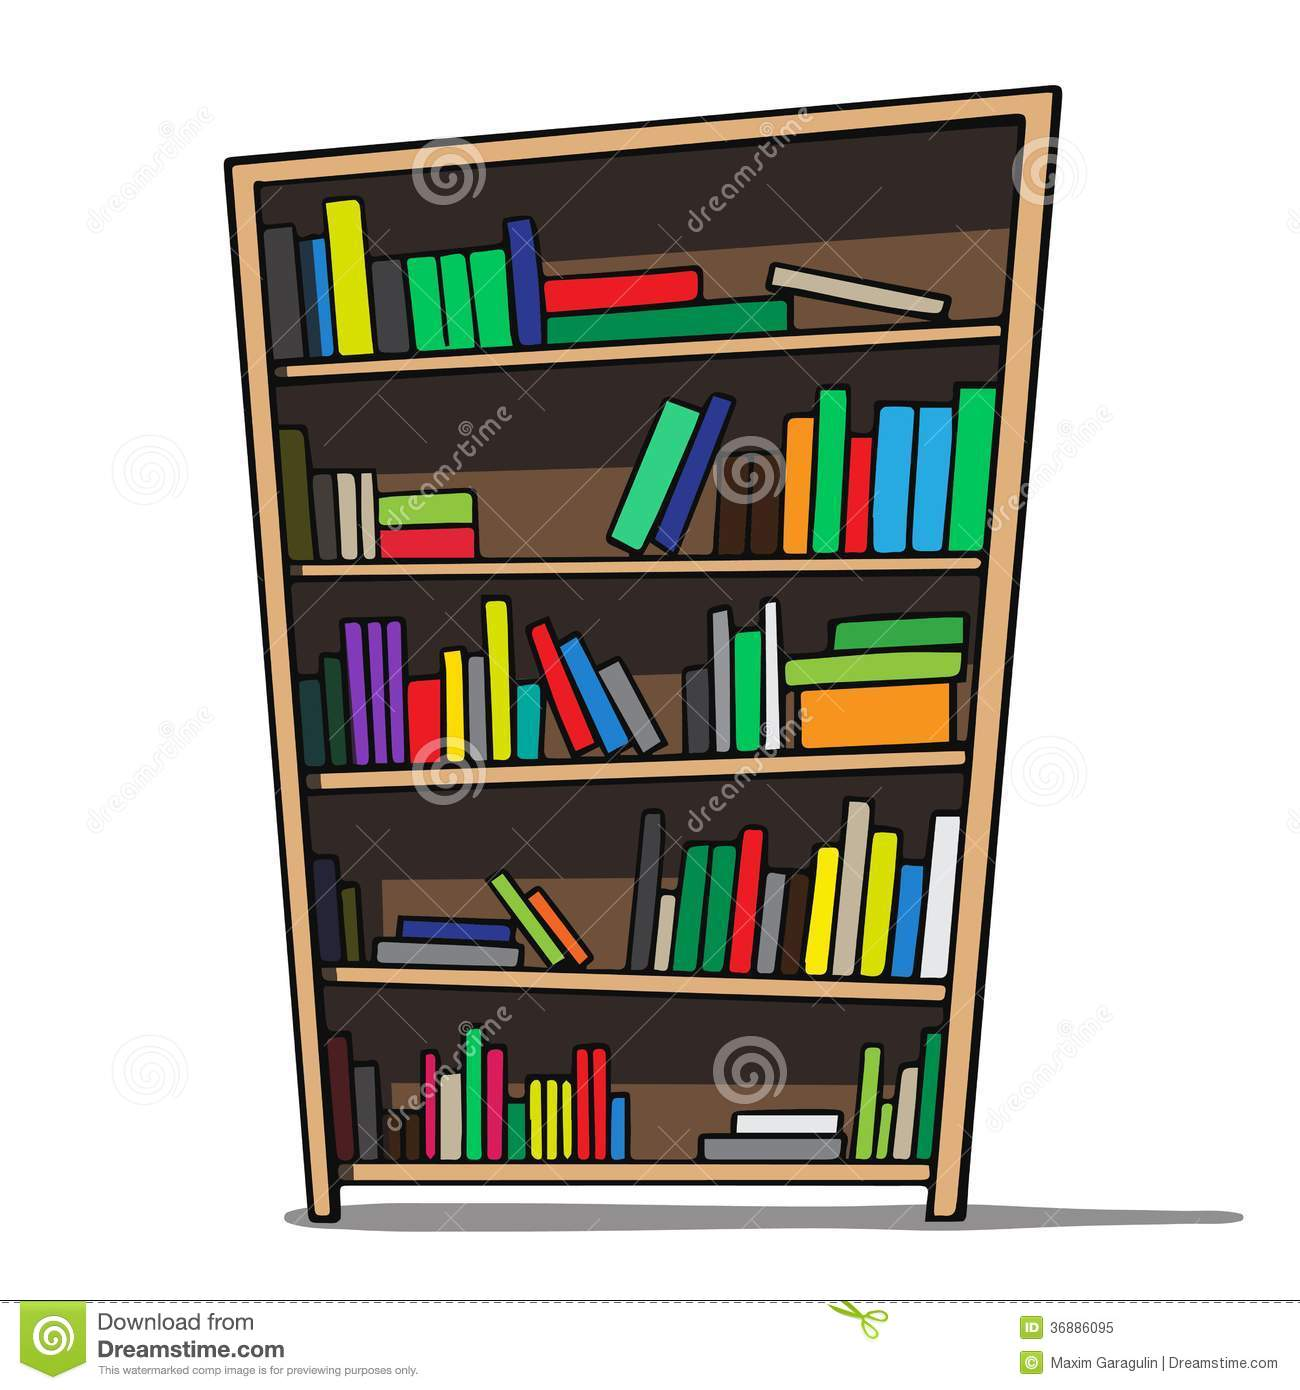 cartoon illustration of a bookshelf royalty free stock